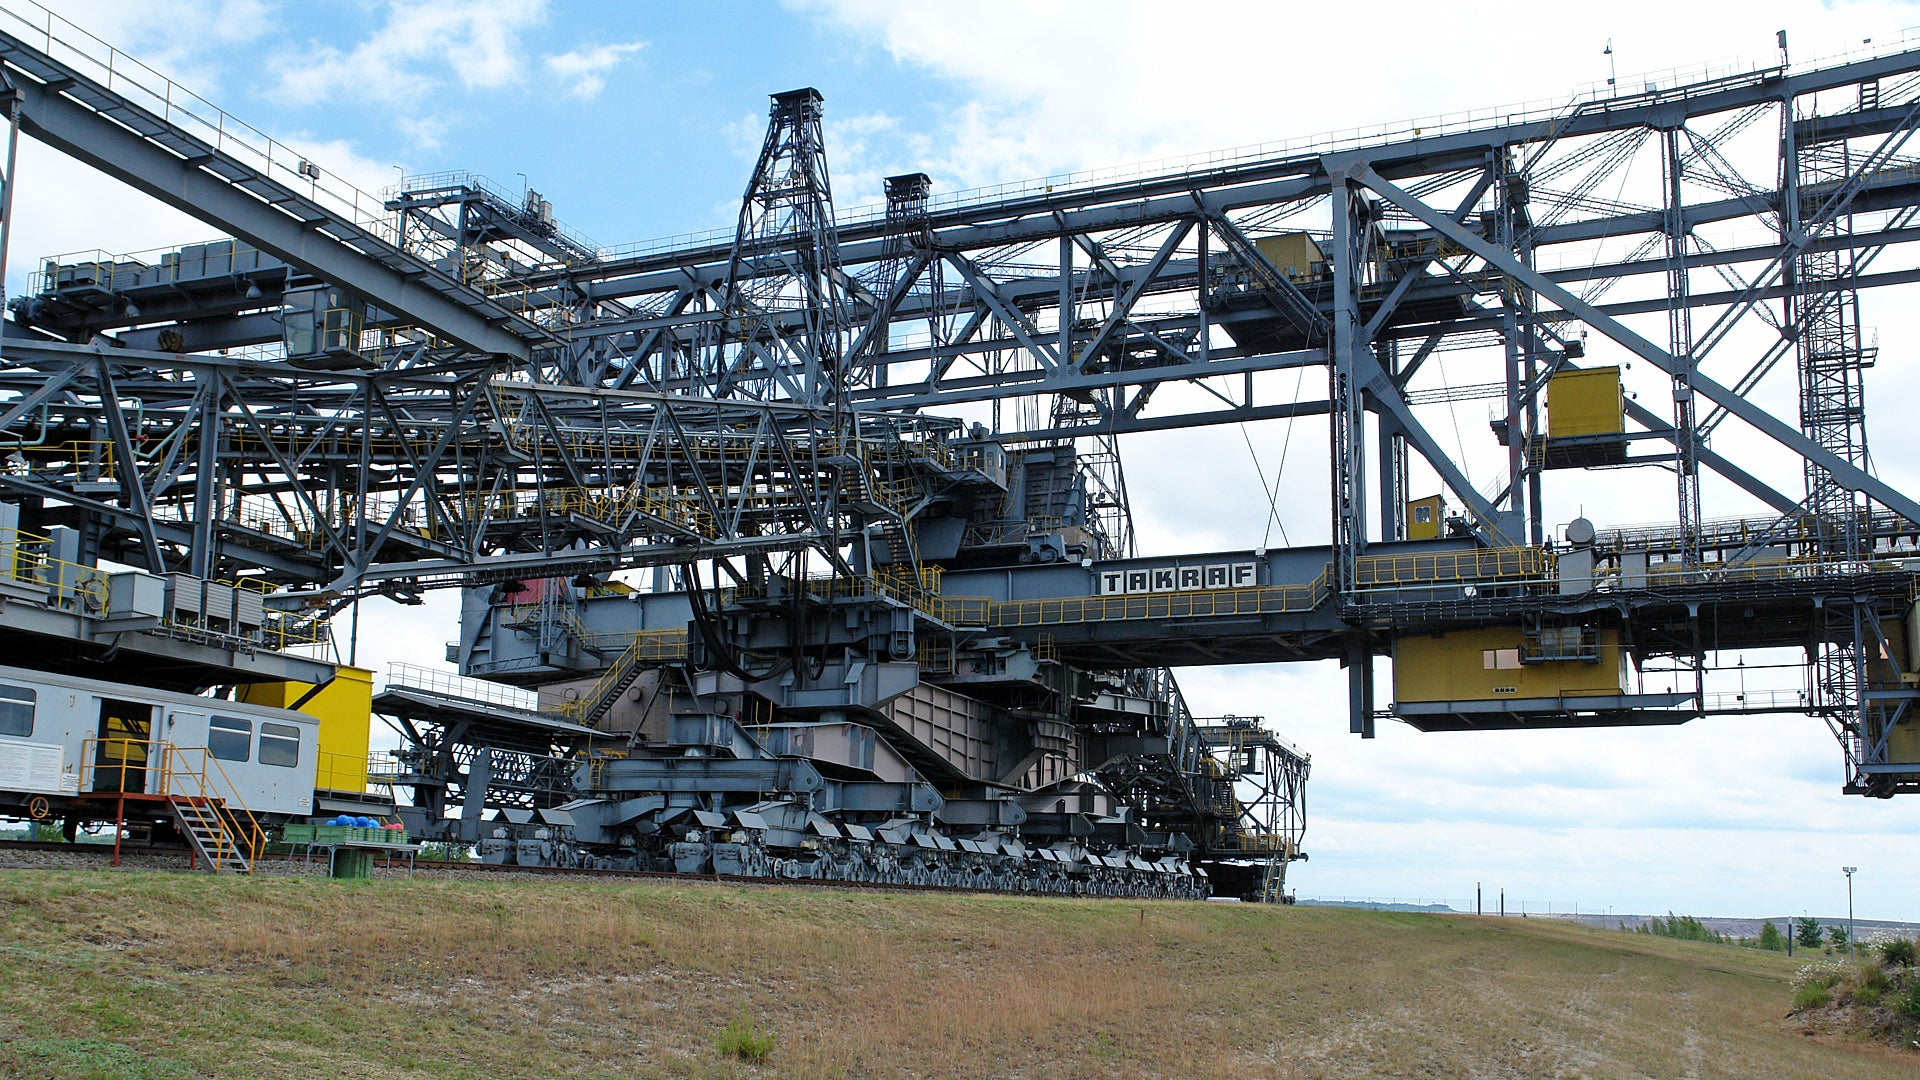 This is the largest movable machine in the world